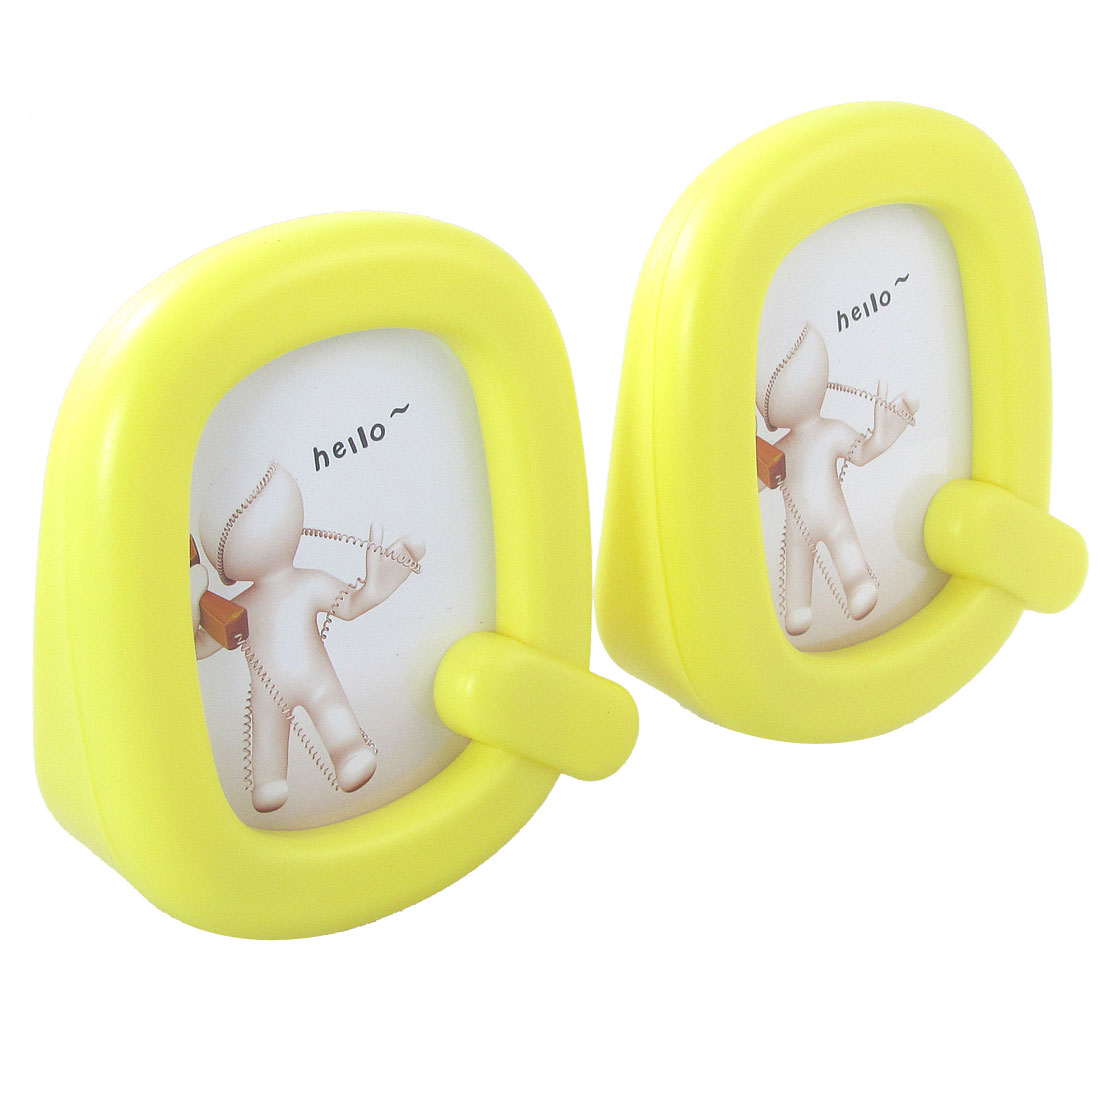 Office Desk Yellow Plastic Q Shaped Picture Frame 2 Pcs